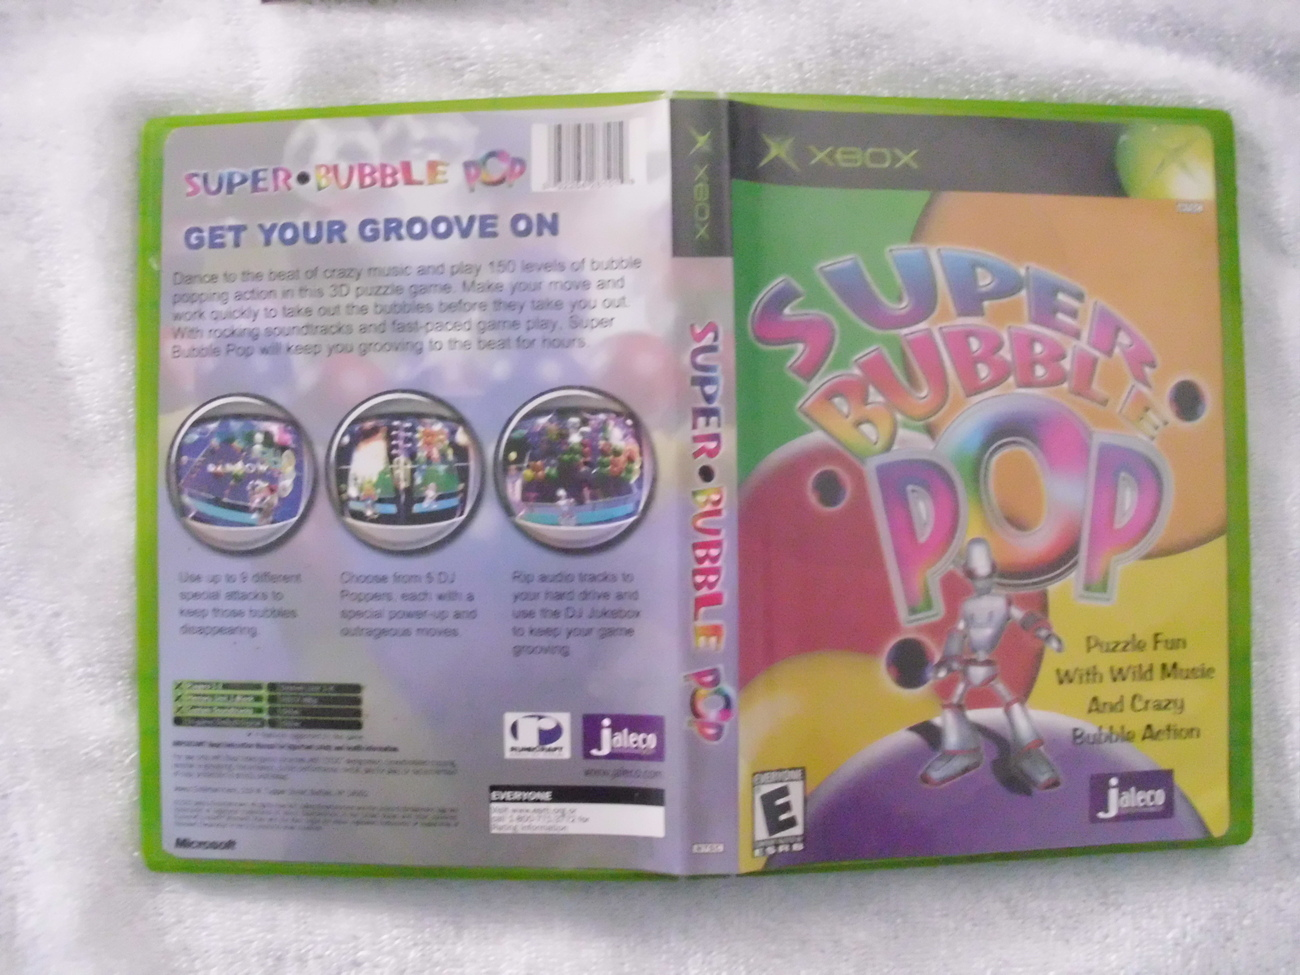 XBOX Super Bubble Pop